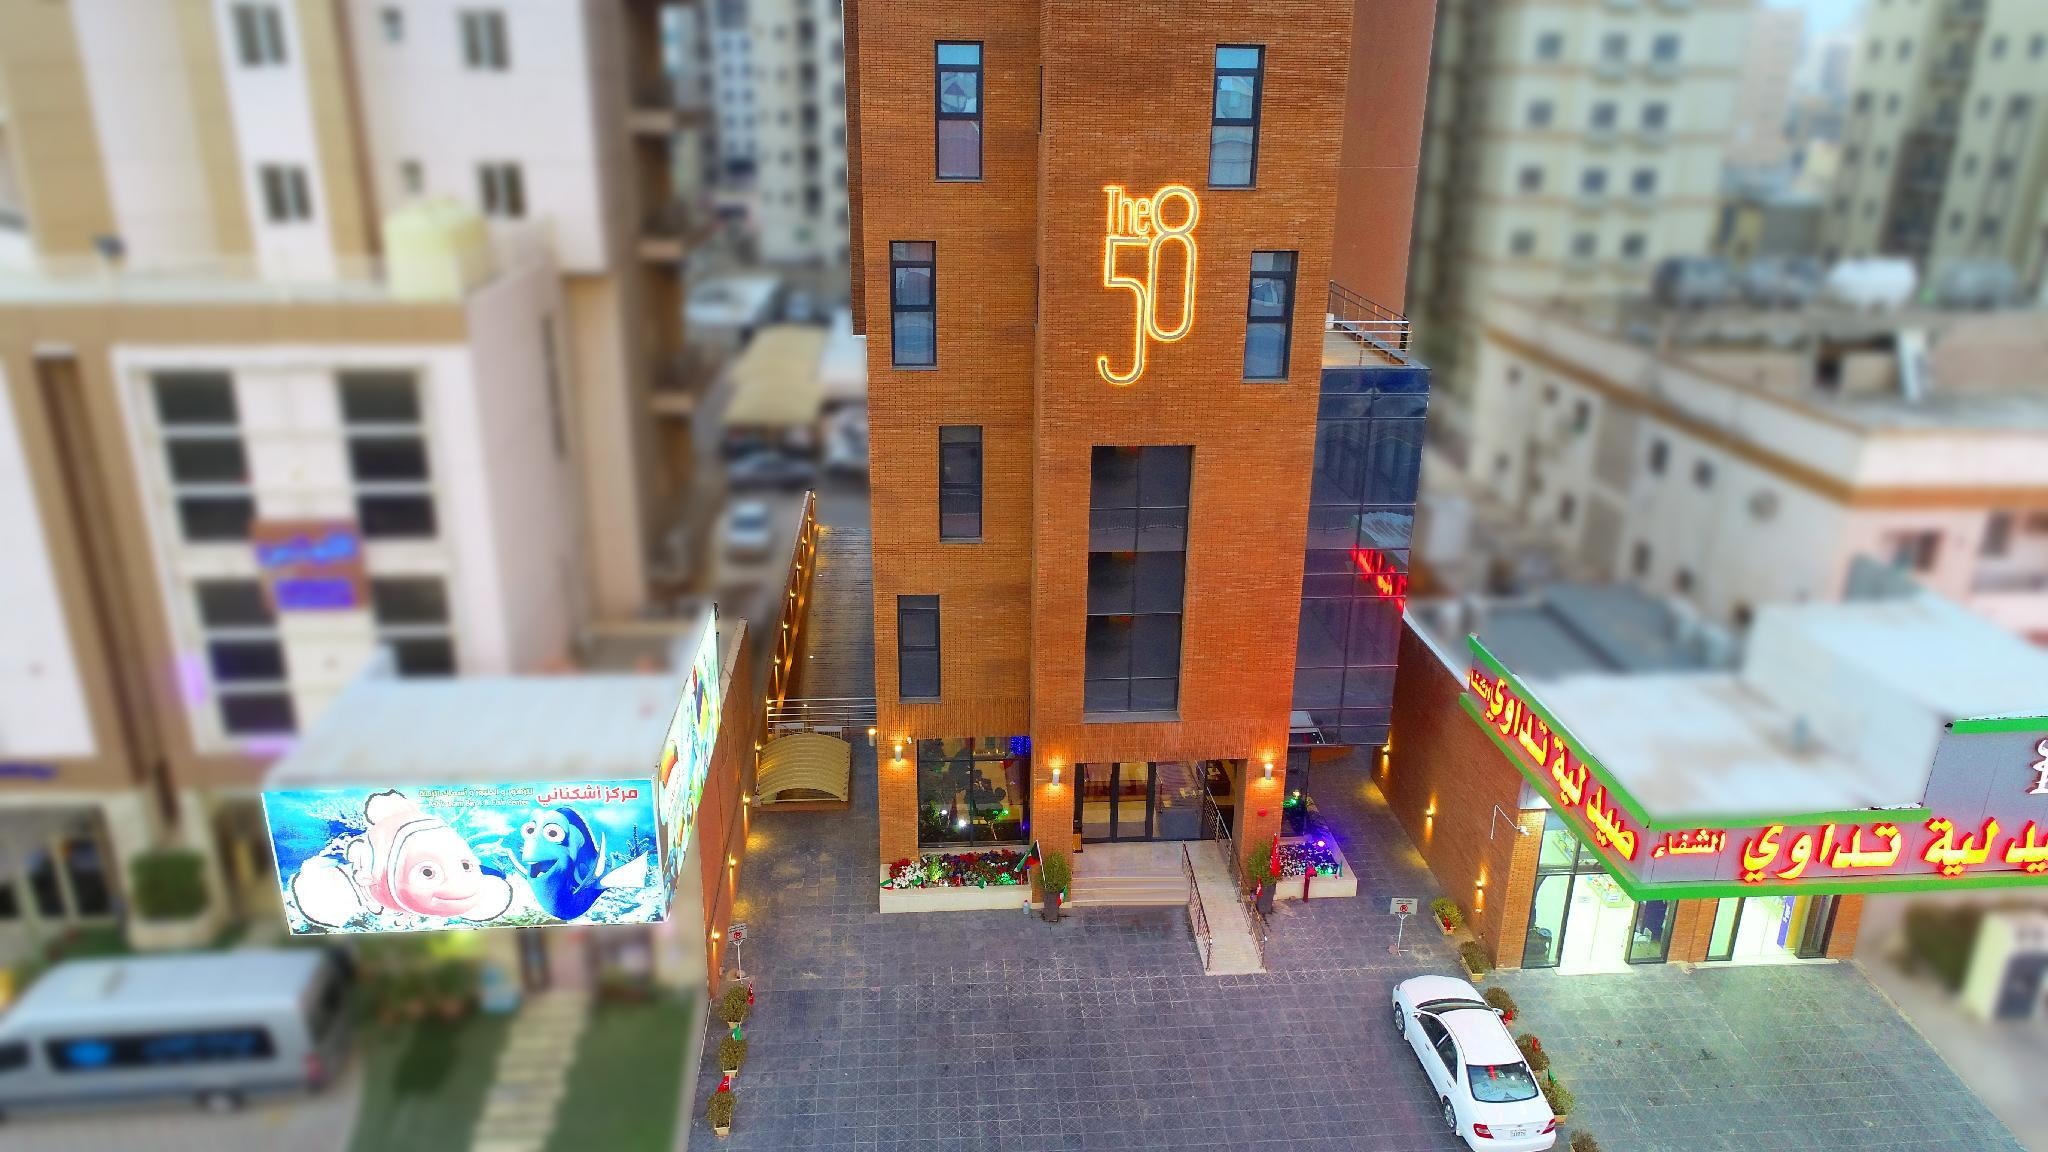 The 58 Hotel Apartments